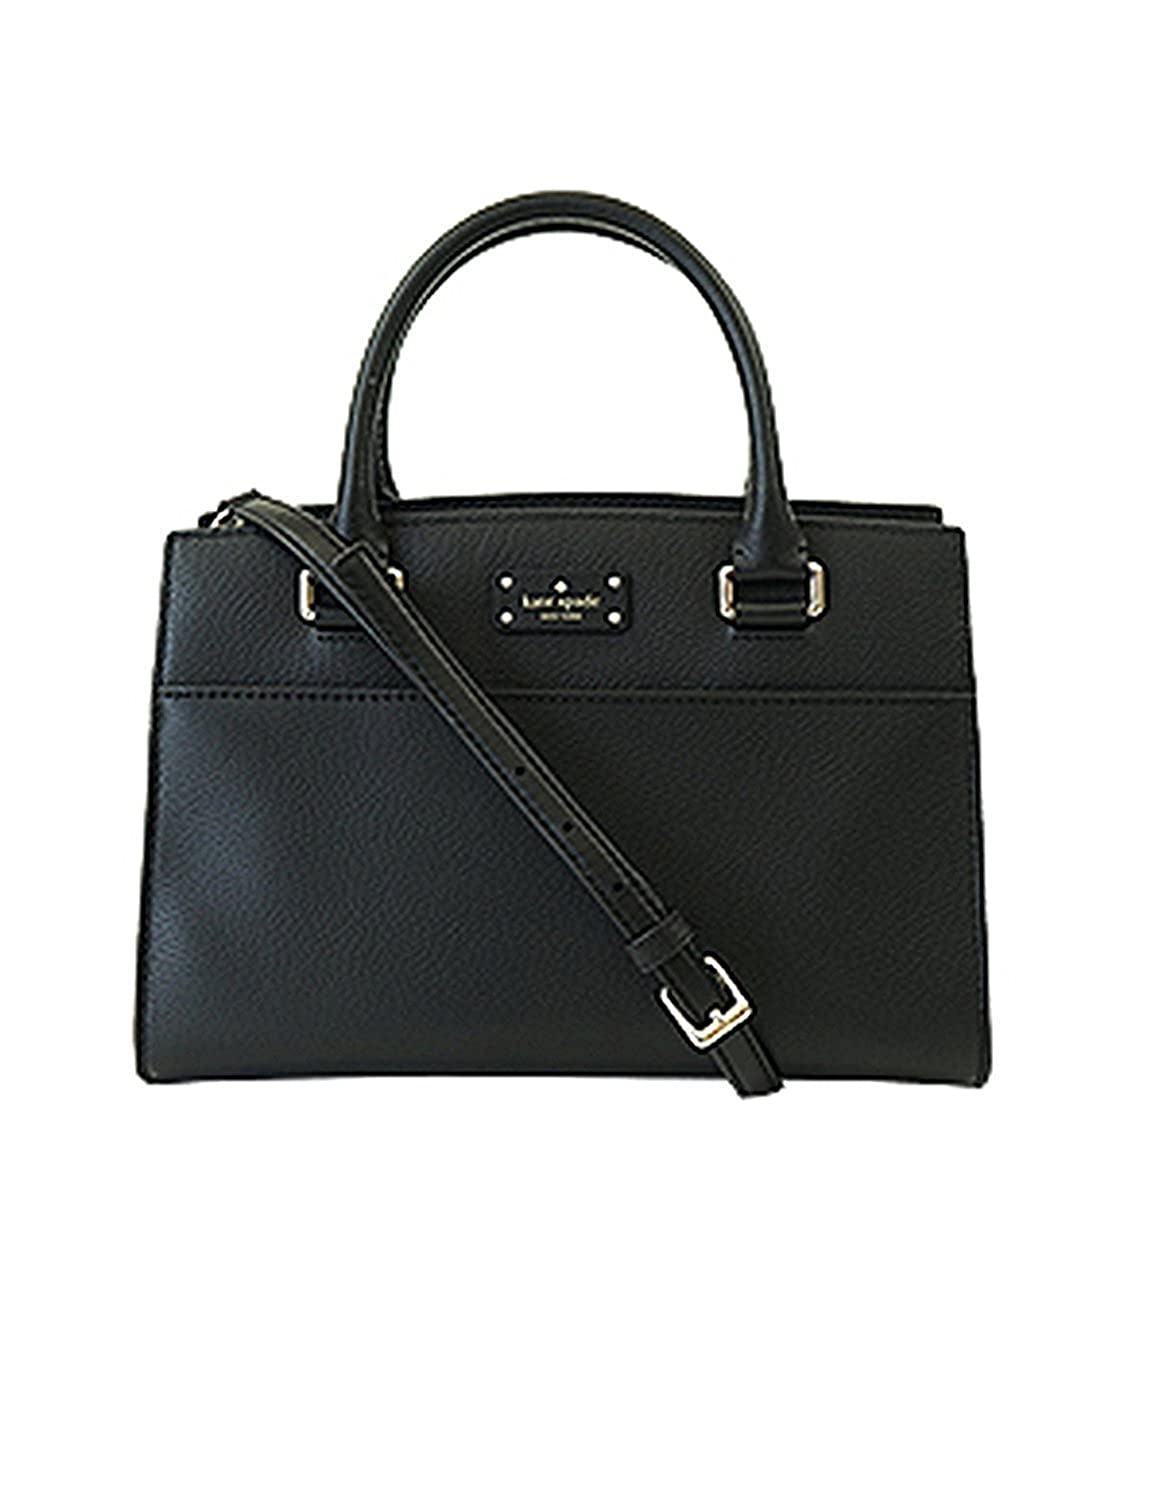 Kate Spade Small Caley Grove St Black Satchel 00_KOFRLOEF_02